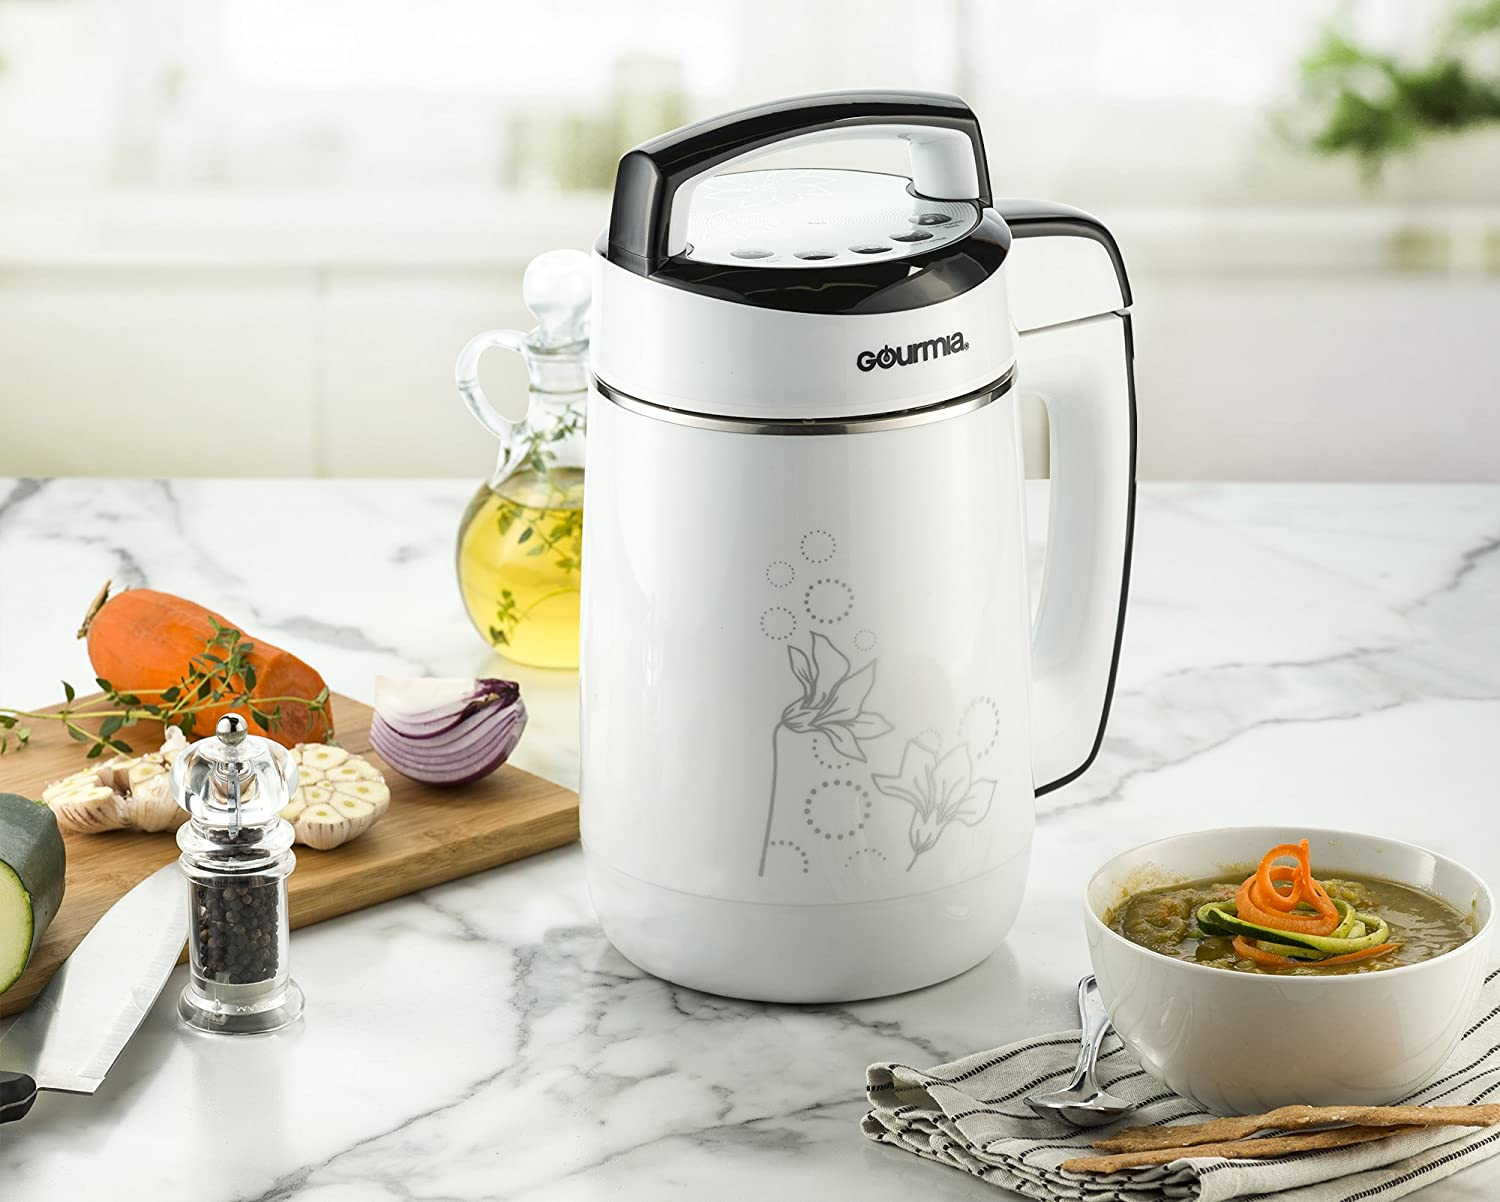 Gourmia Automatic Soup Maker | amazon.com